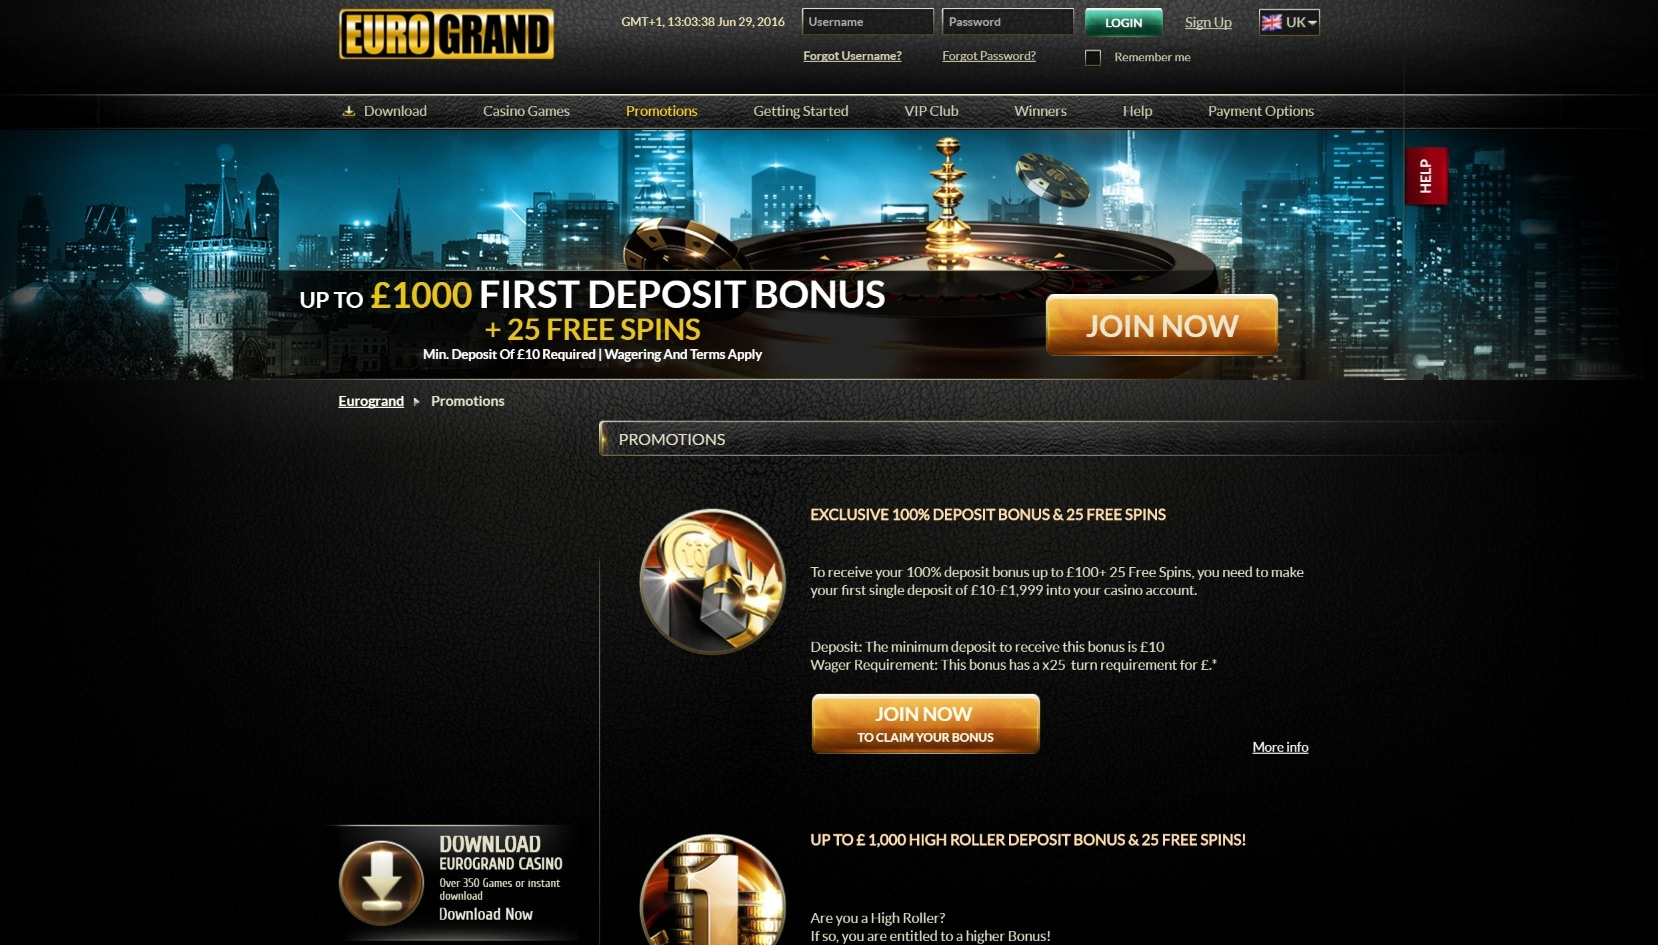 Eurogrand casino зеркало bet on gambling